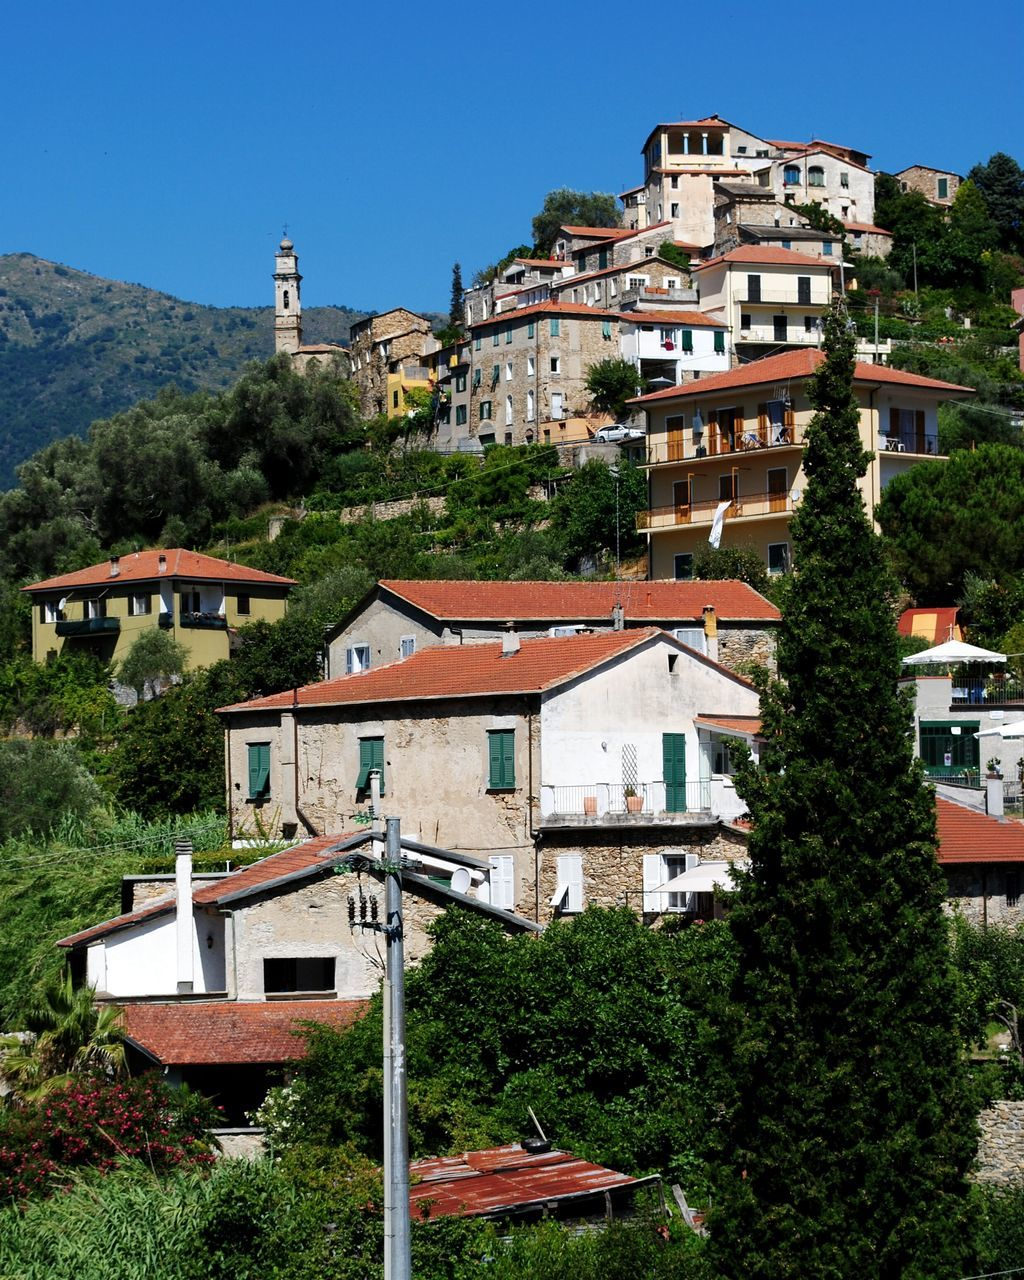 Low Angle View Of Houses And Trees On Hills Against Clear Blue Sky At Dolcedo